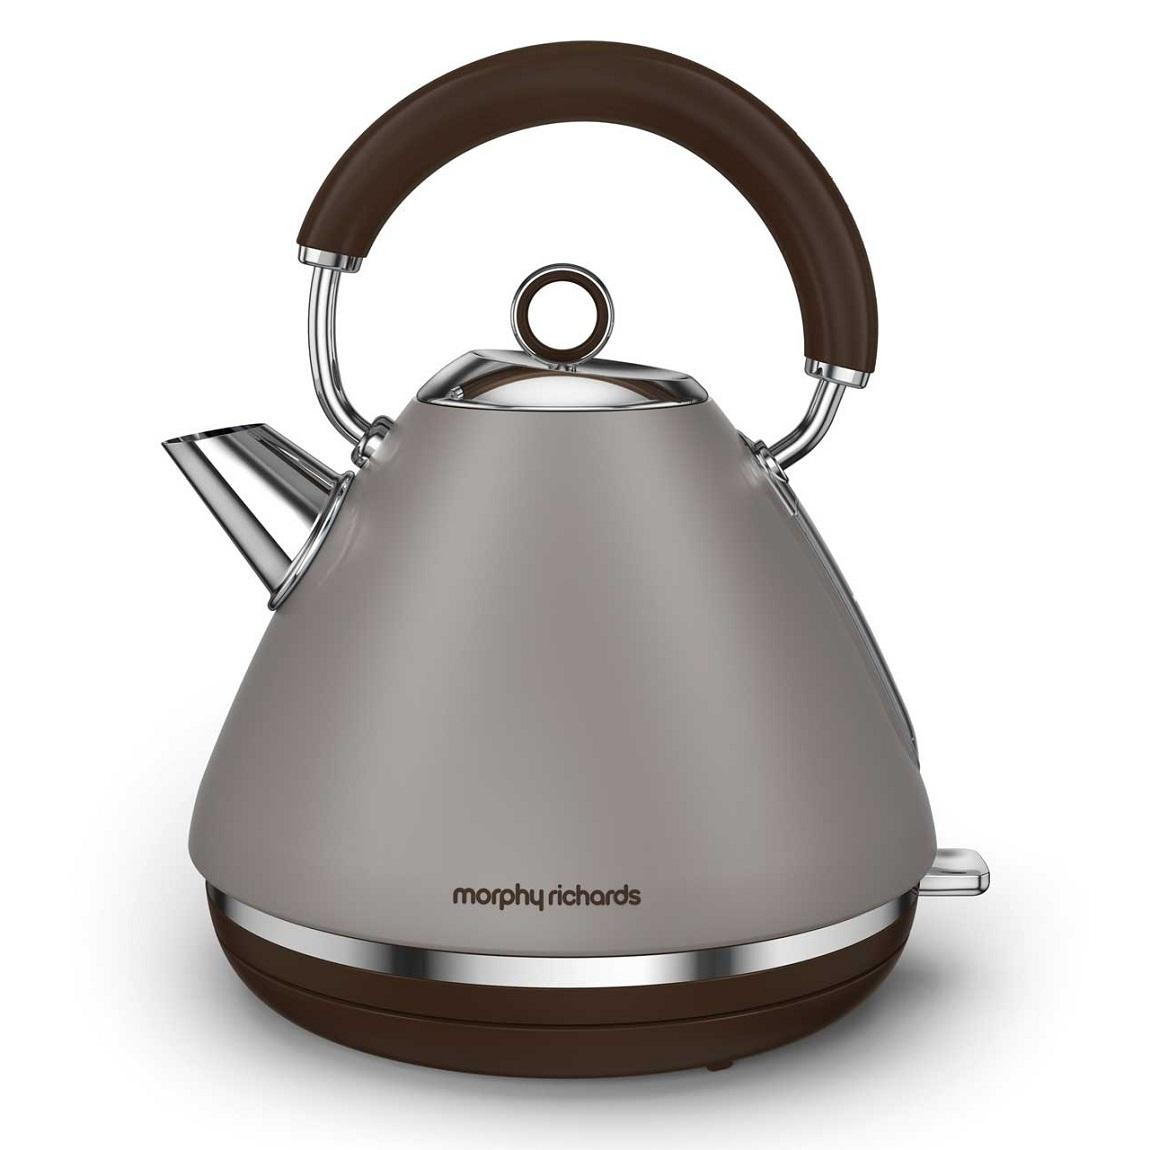 Morphy-Richards-102102-kettle.jpg